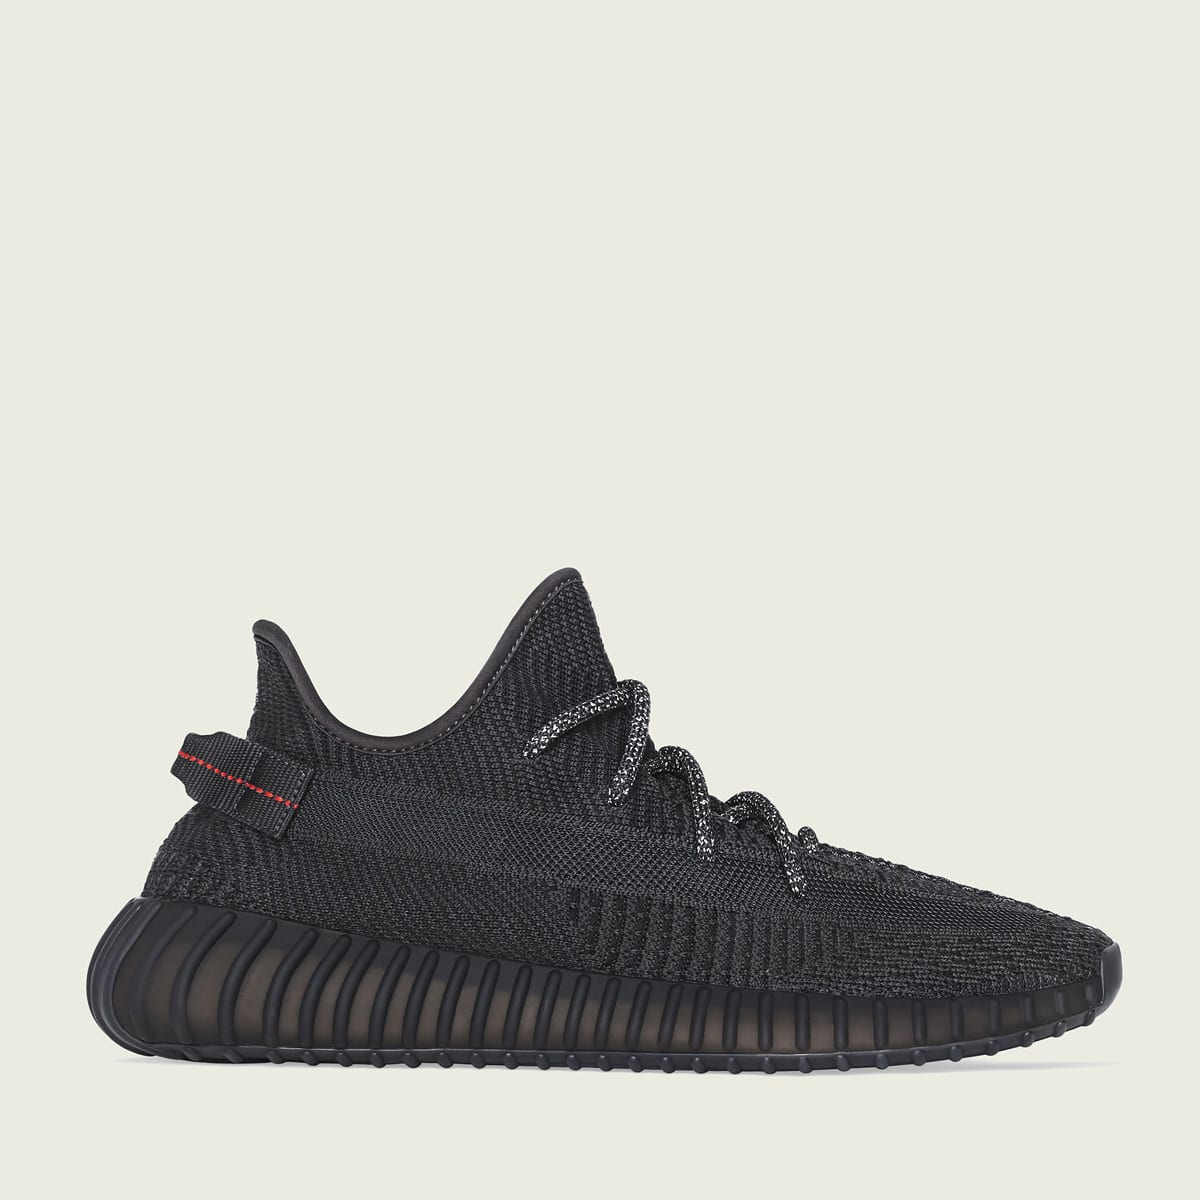 adidas Originals YEEZY BOOST 350 V2 NONE/NONE/NONE 19FW-S_photo_large